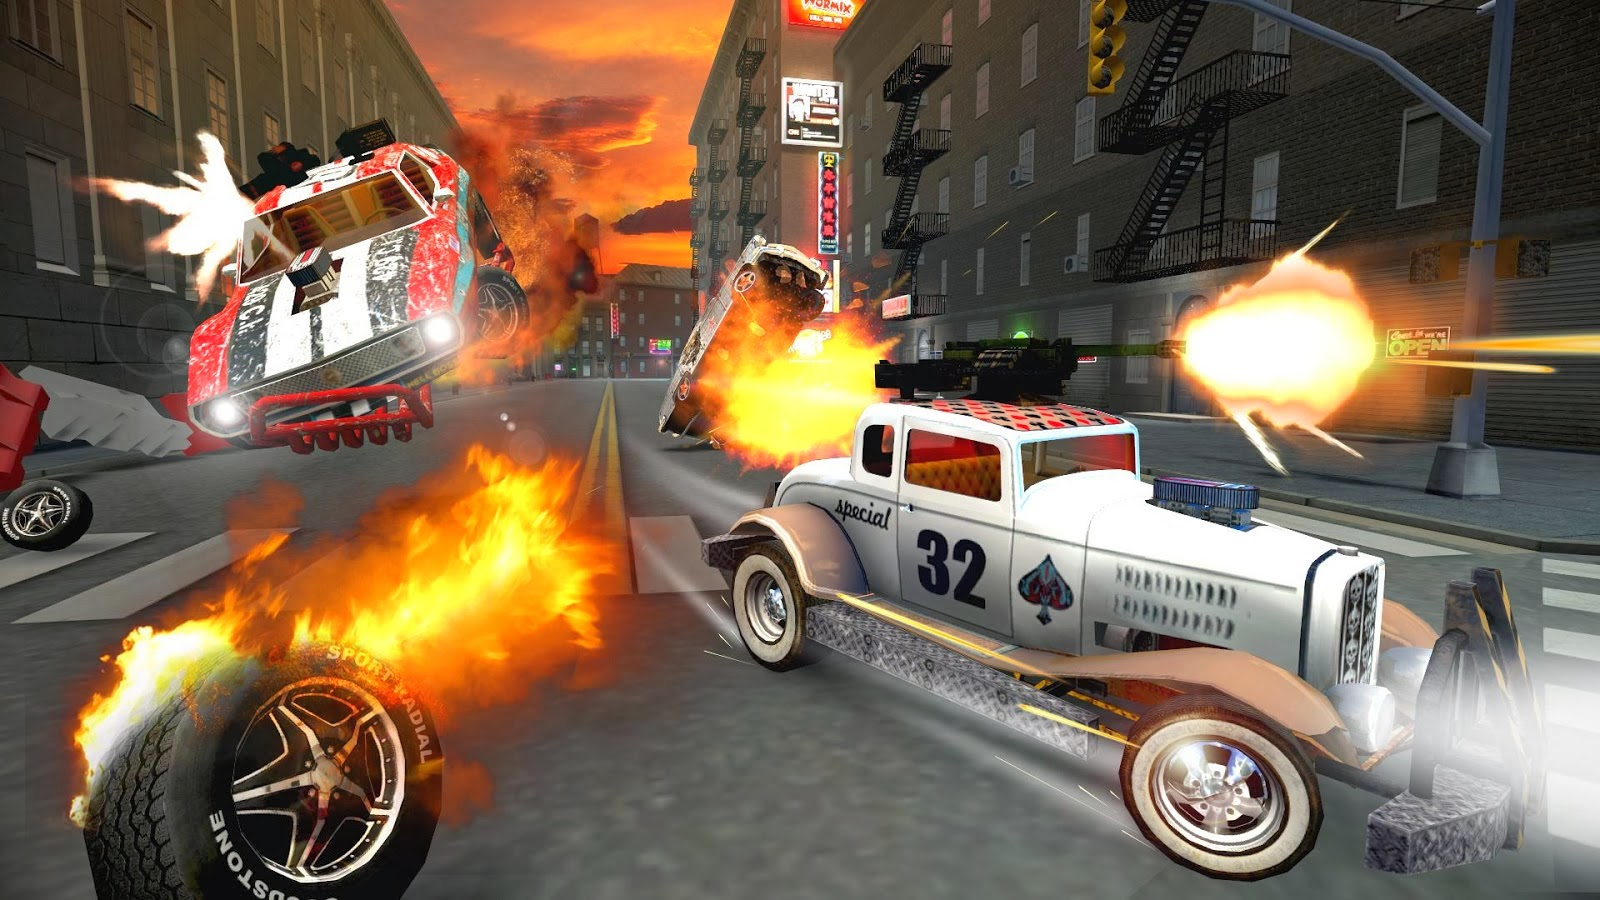 ACTION HERO Death Tour- Racing Action Game Download,